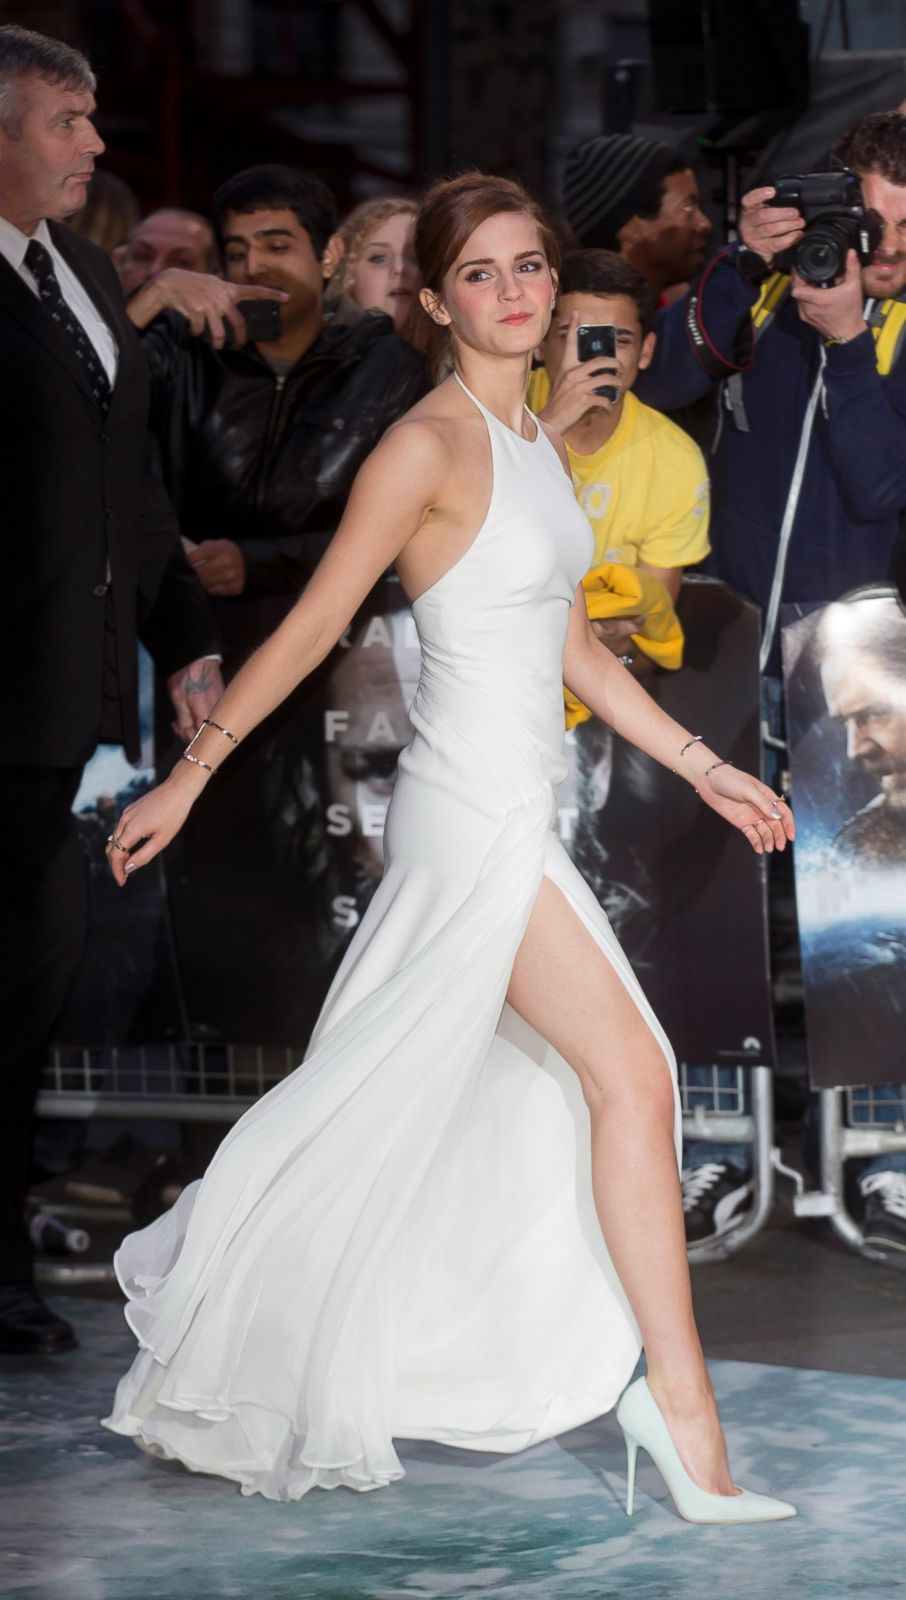 Emma Watson Shows Off Her Legs Picture Daring Red Carpet